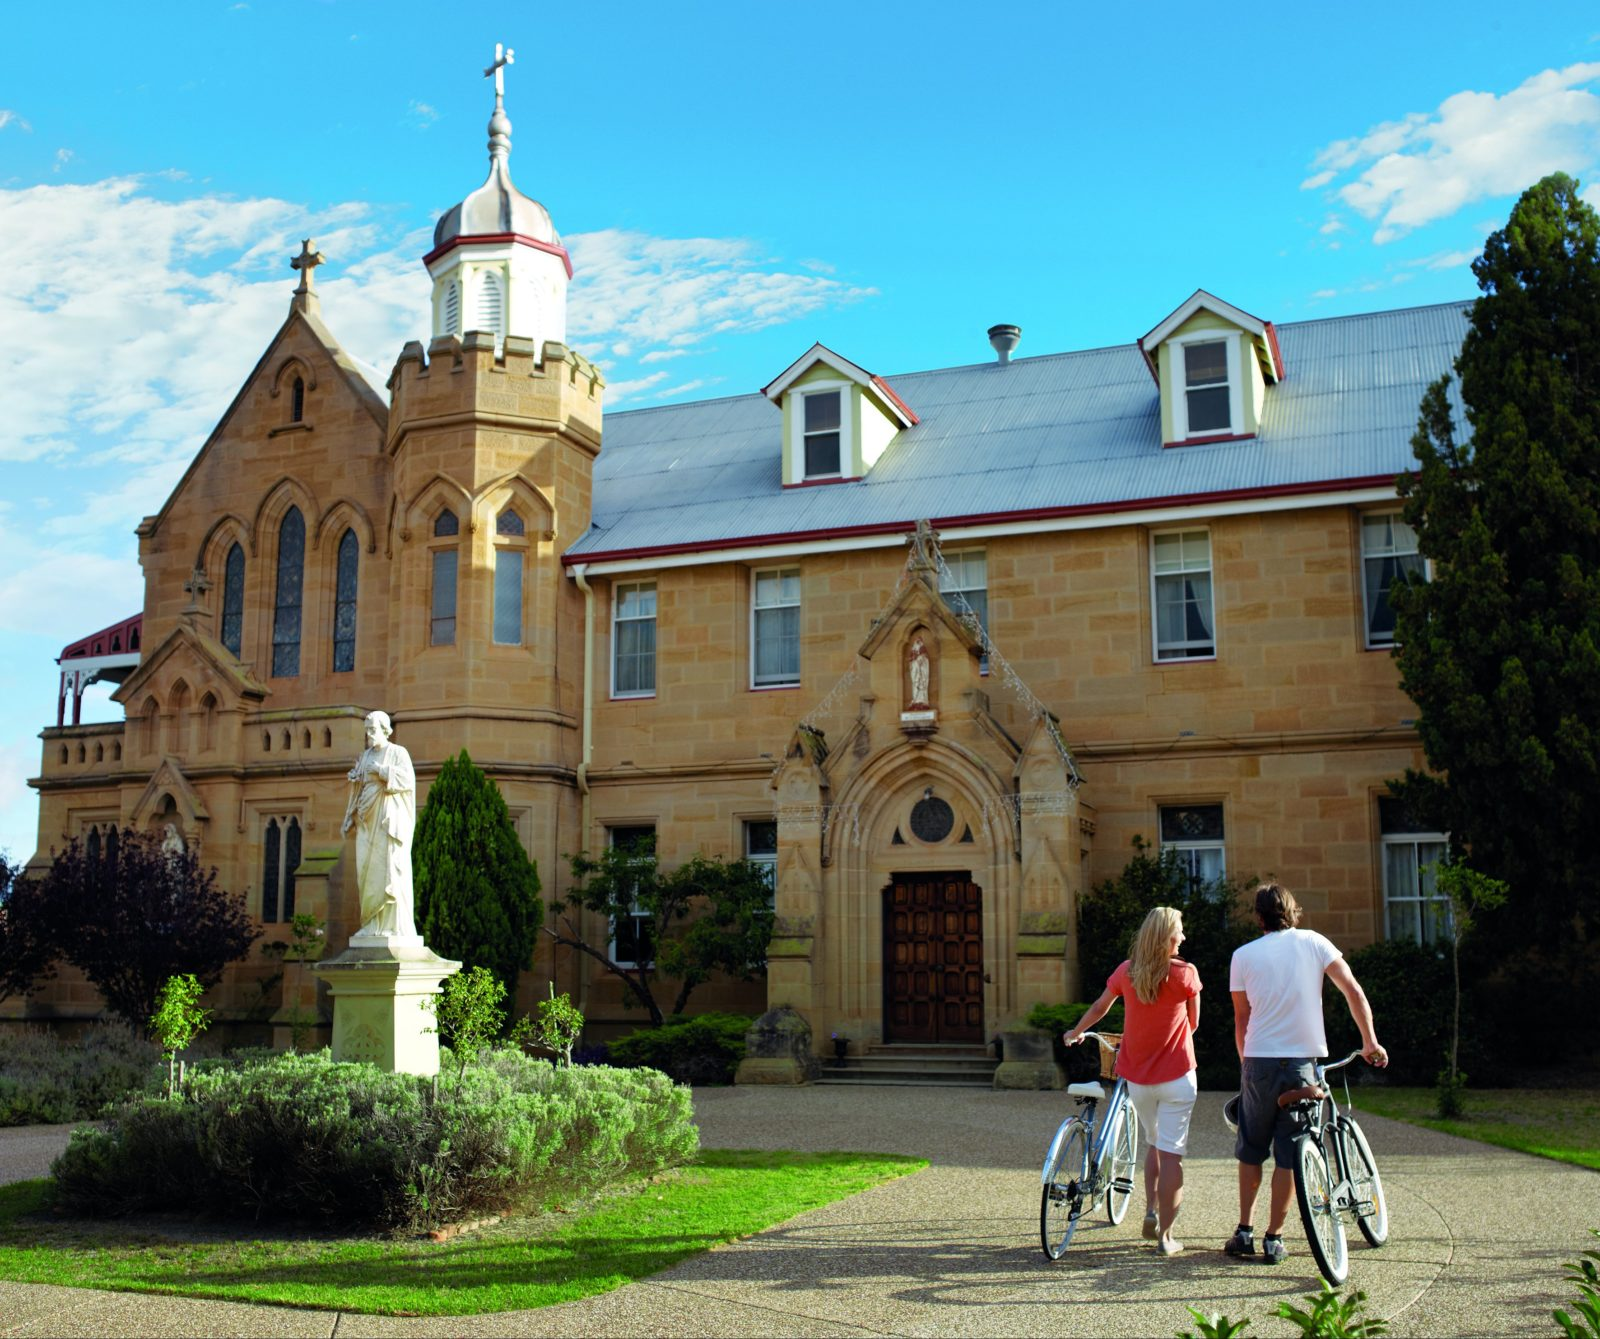 Abbey of the Roses, Warwick